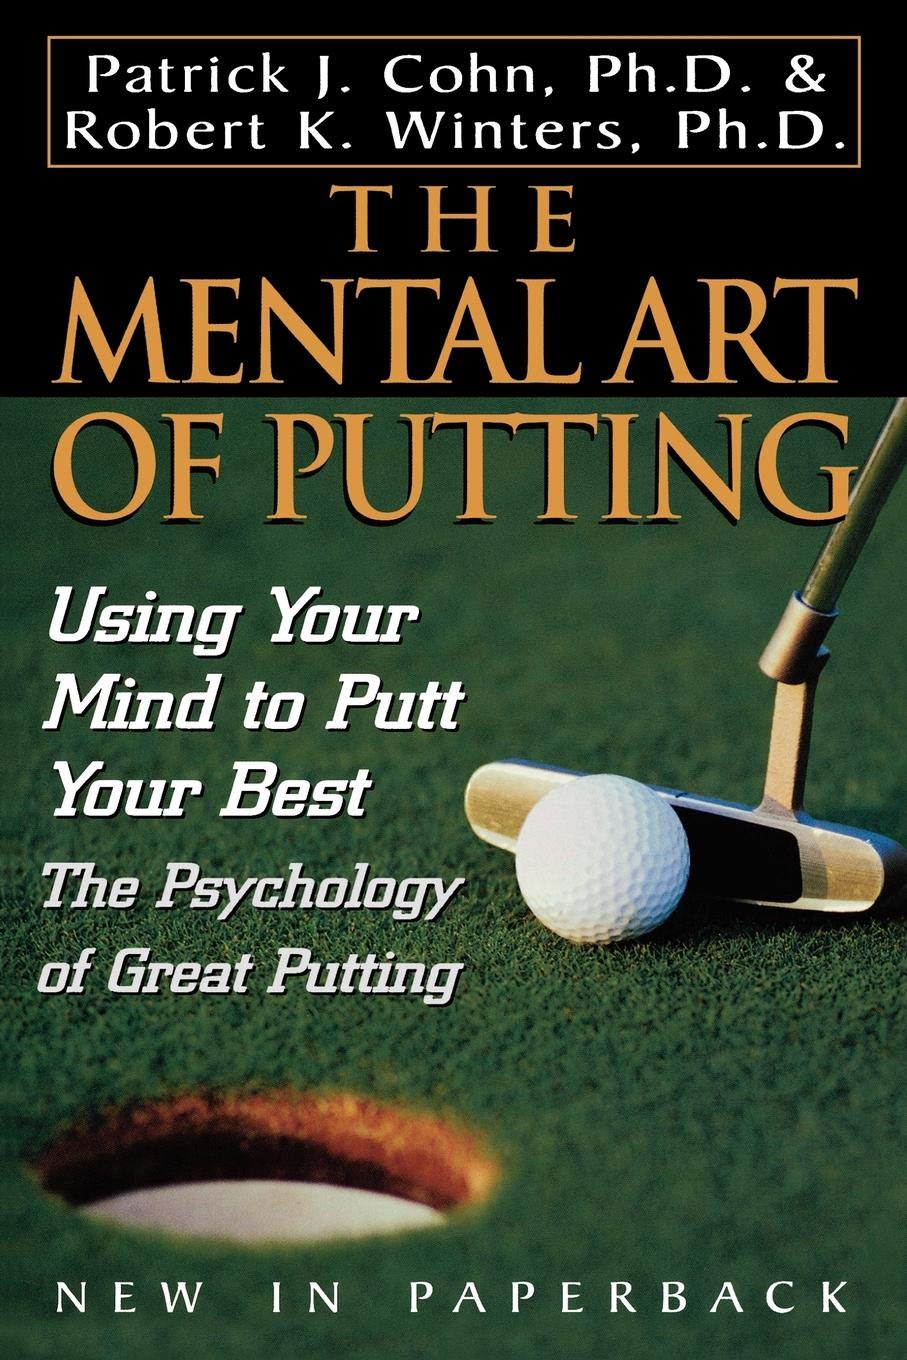 The Mental Art of Putting: Using Your Mind to Putt Your Best pdf